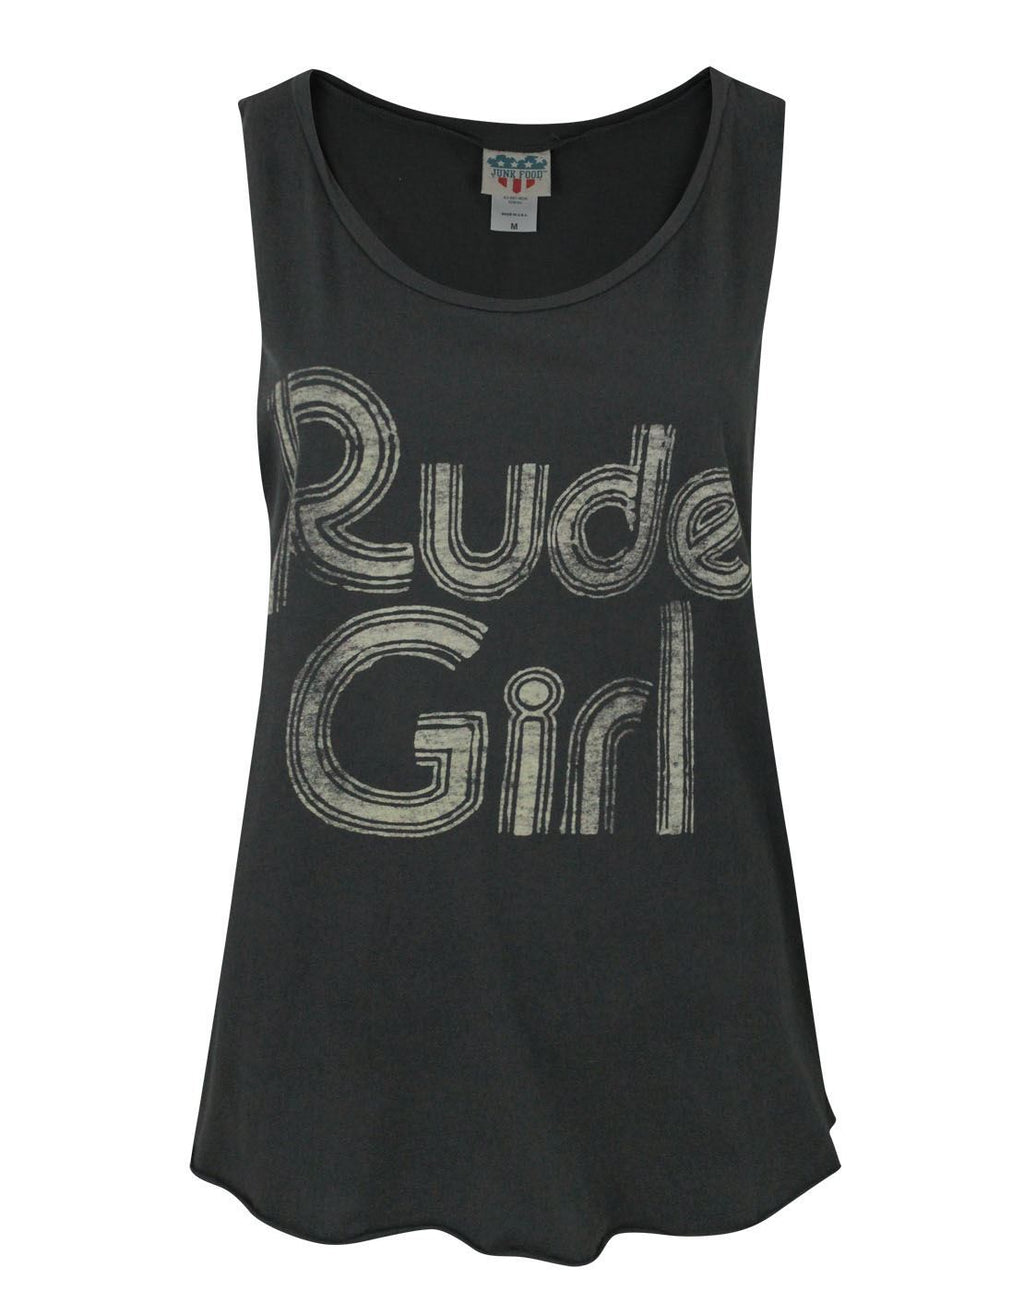 Junk Food Rude Girl Women's Vest